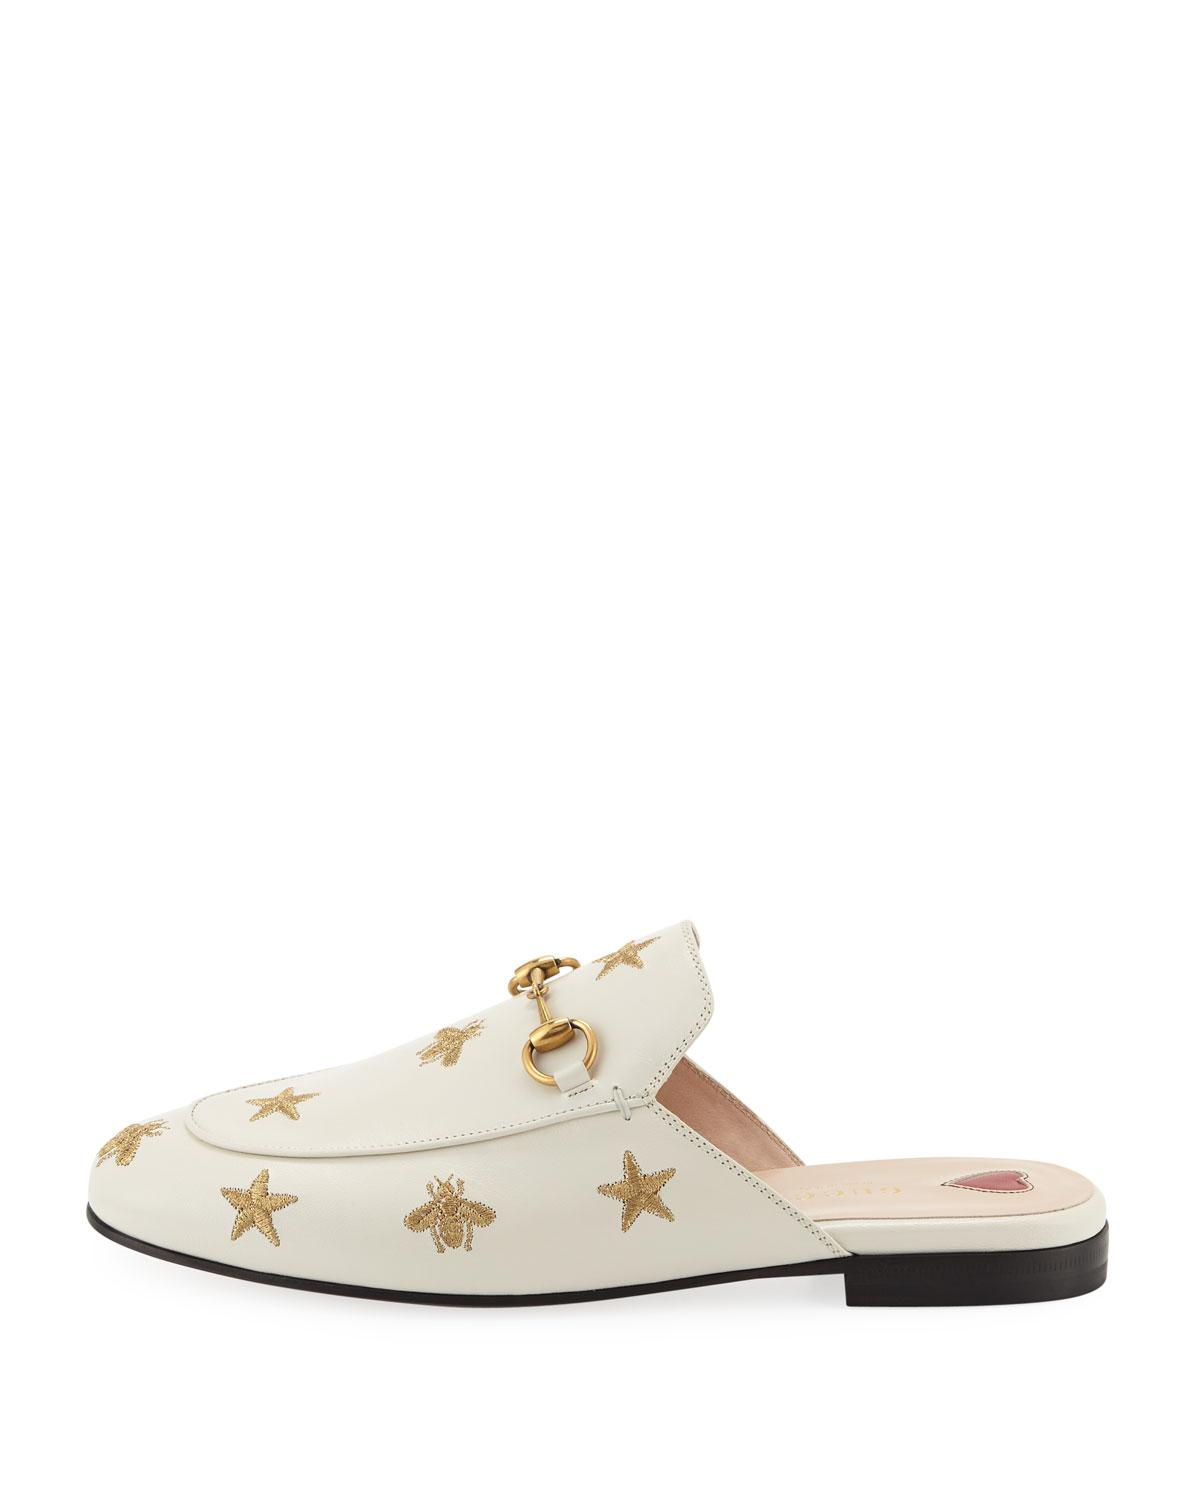 04b8dc48d12 Lyst - Gucci Flat Princetown Bee   Star Mule in White